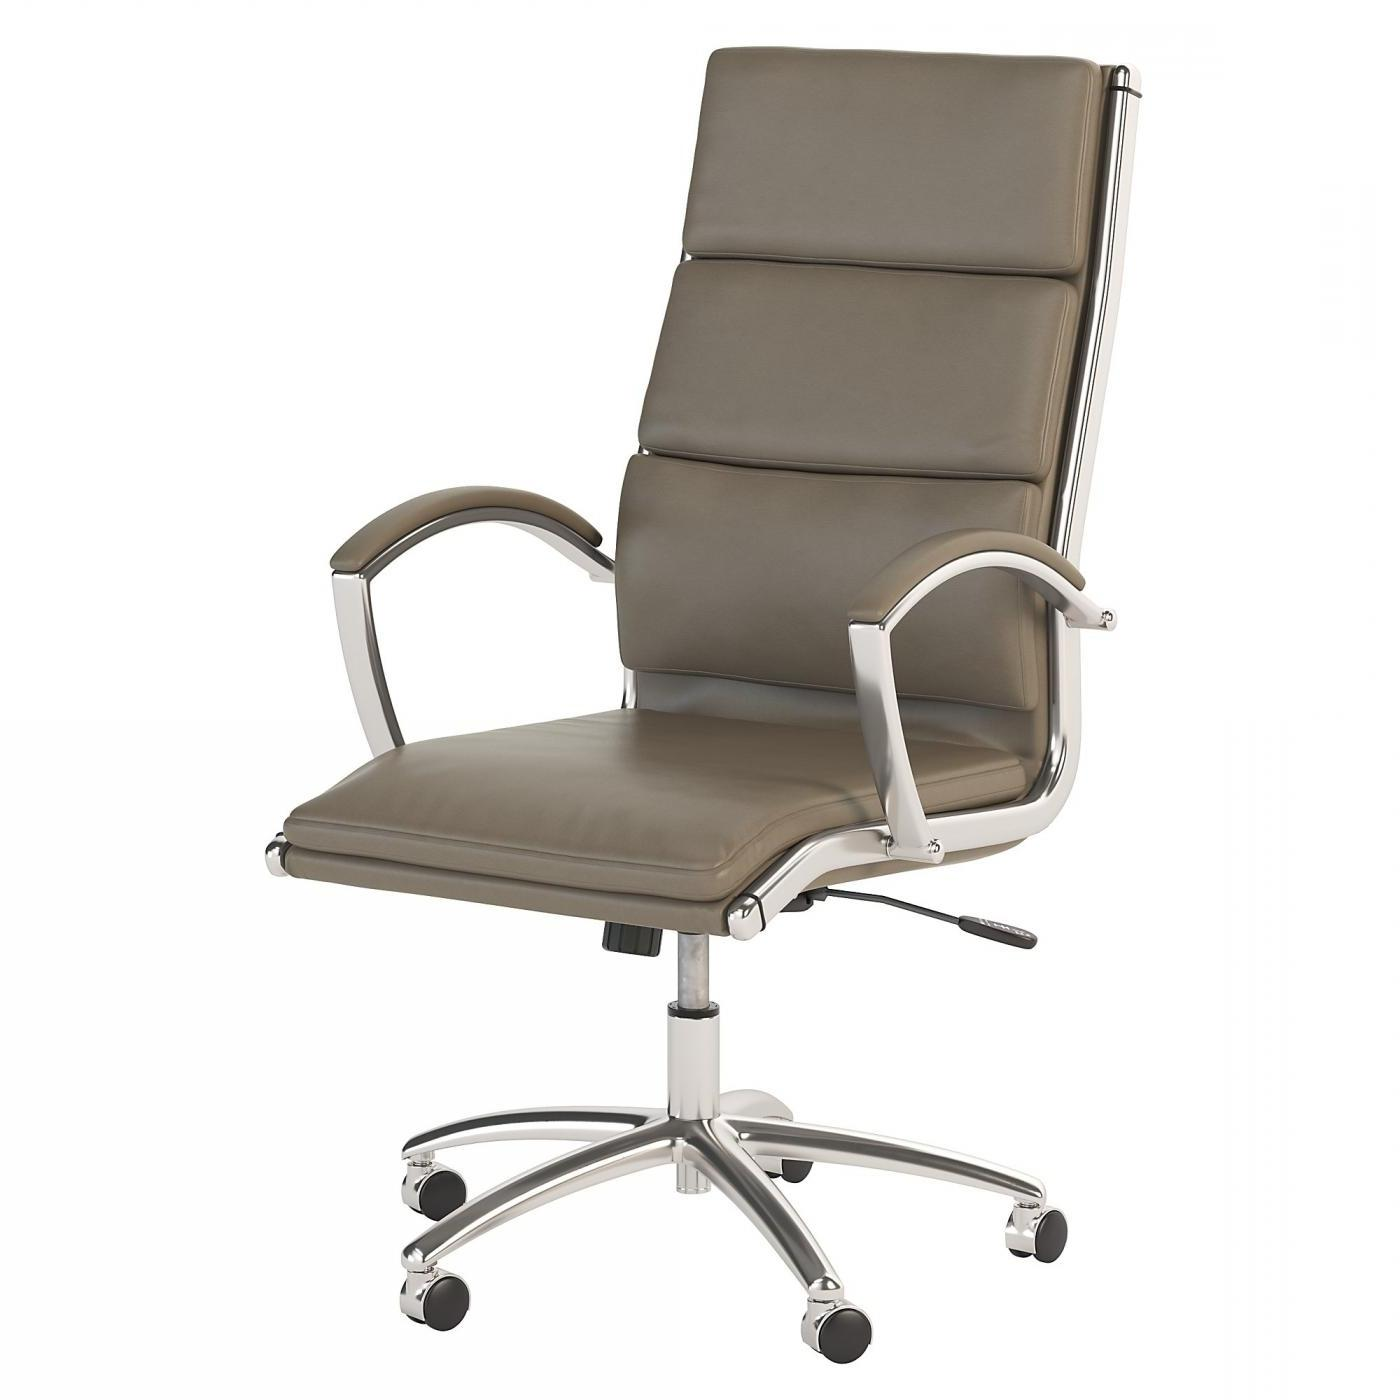 <font color=#c60><b>BUSH BUSINESS FURNITURE MODELO HIGH BACK LEATHER EXECUTIVE OFFICE CHAIR #EH-CH1701WGL-03. FREE SHIPPING:</font></b> </font></b></font></b>